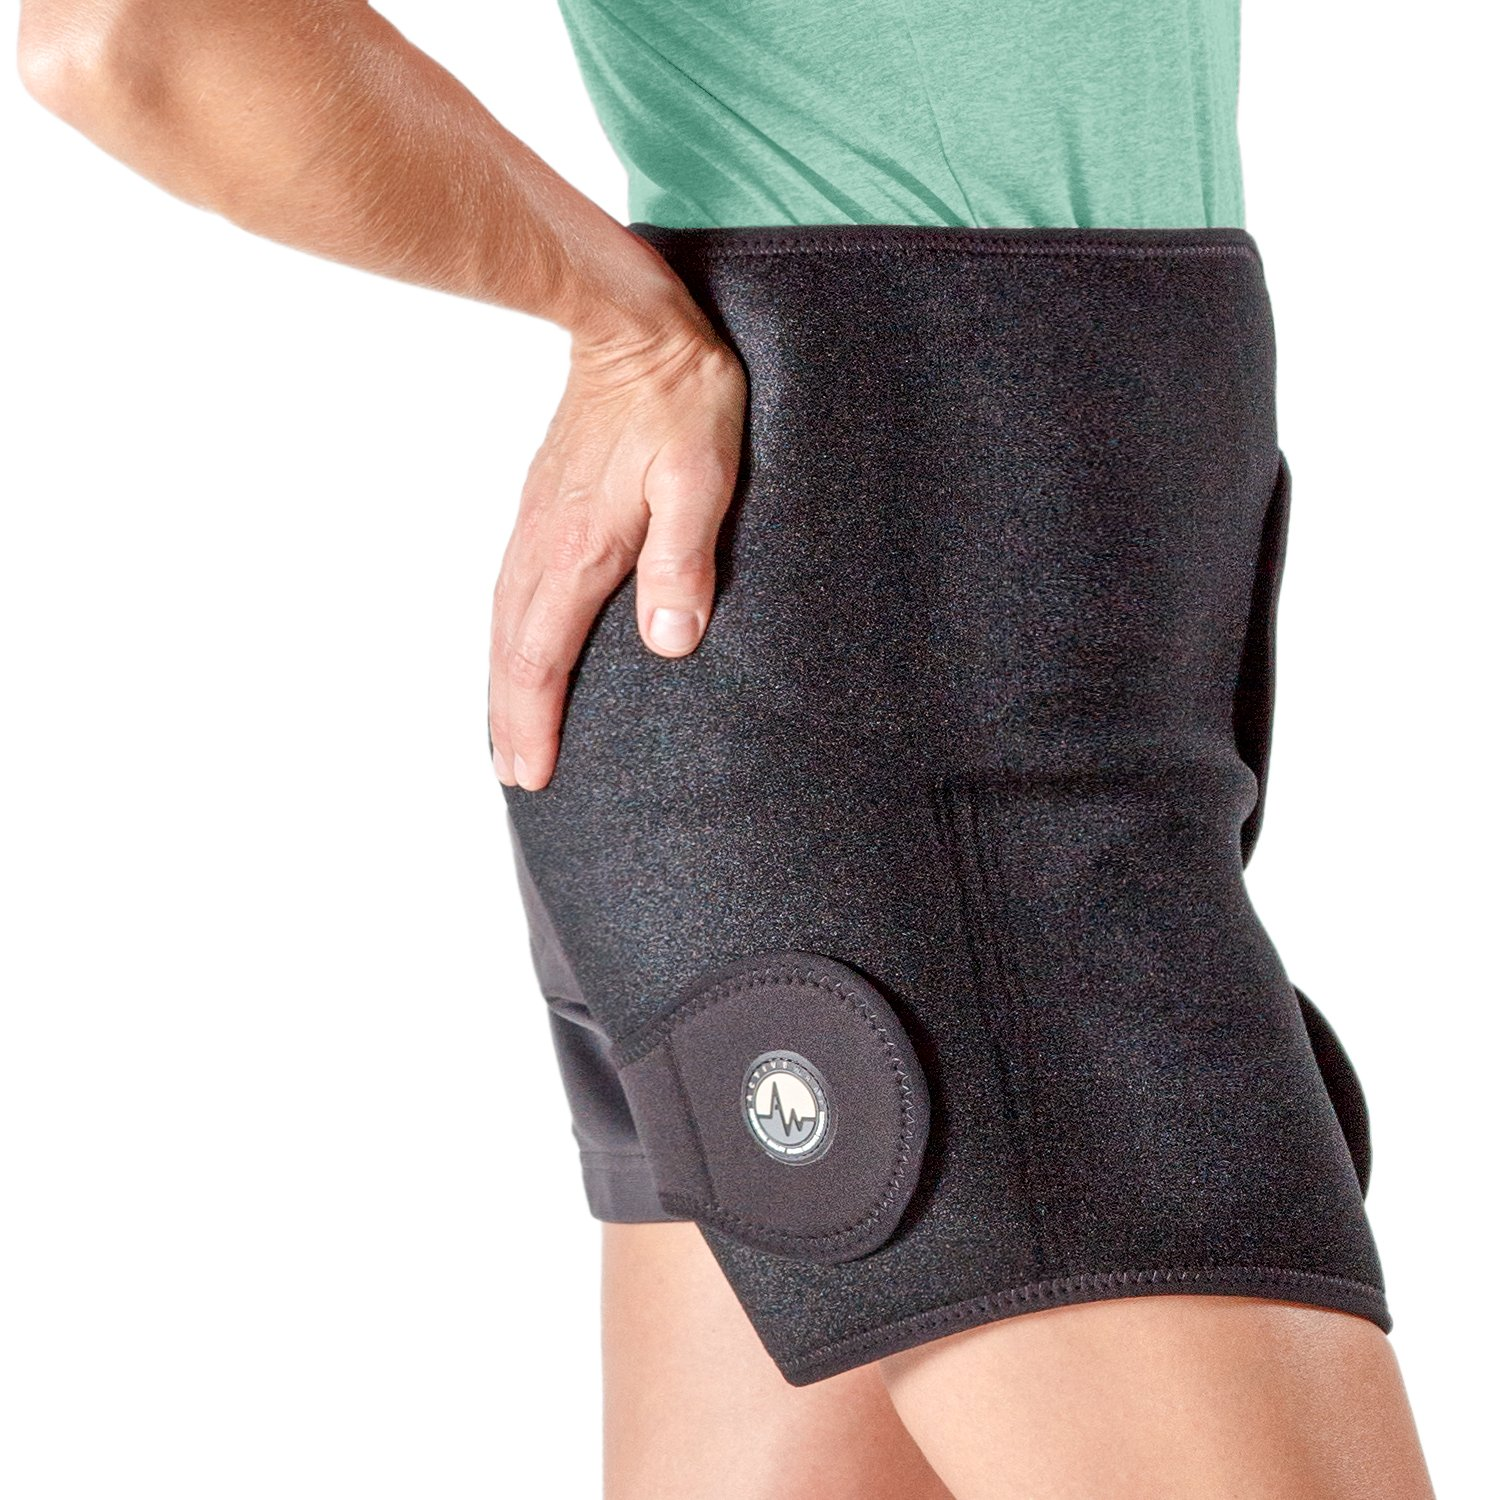 AW ACTIVEWRAP ActiveWrap Hip Ice Therapy Wrap HIP1 - Ice Pack Included by AW ACTIVEWRAP